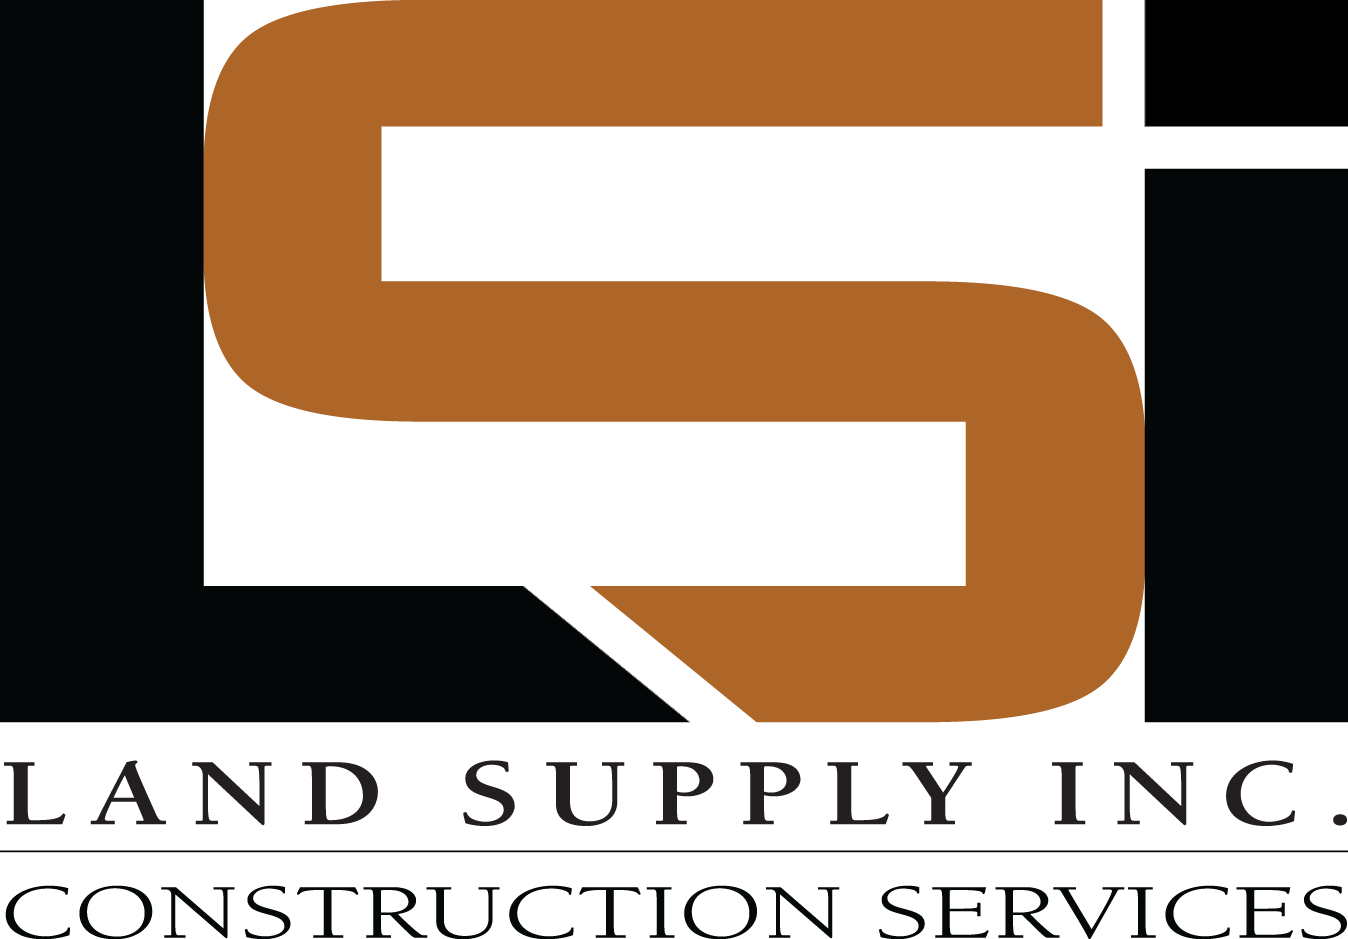 Land Supply Inc.